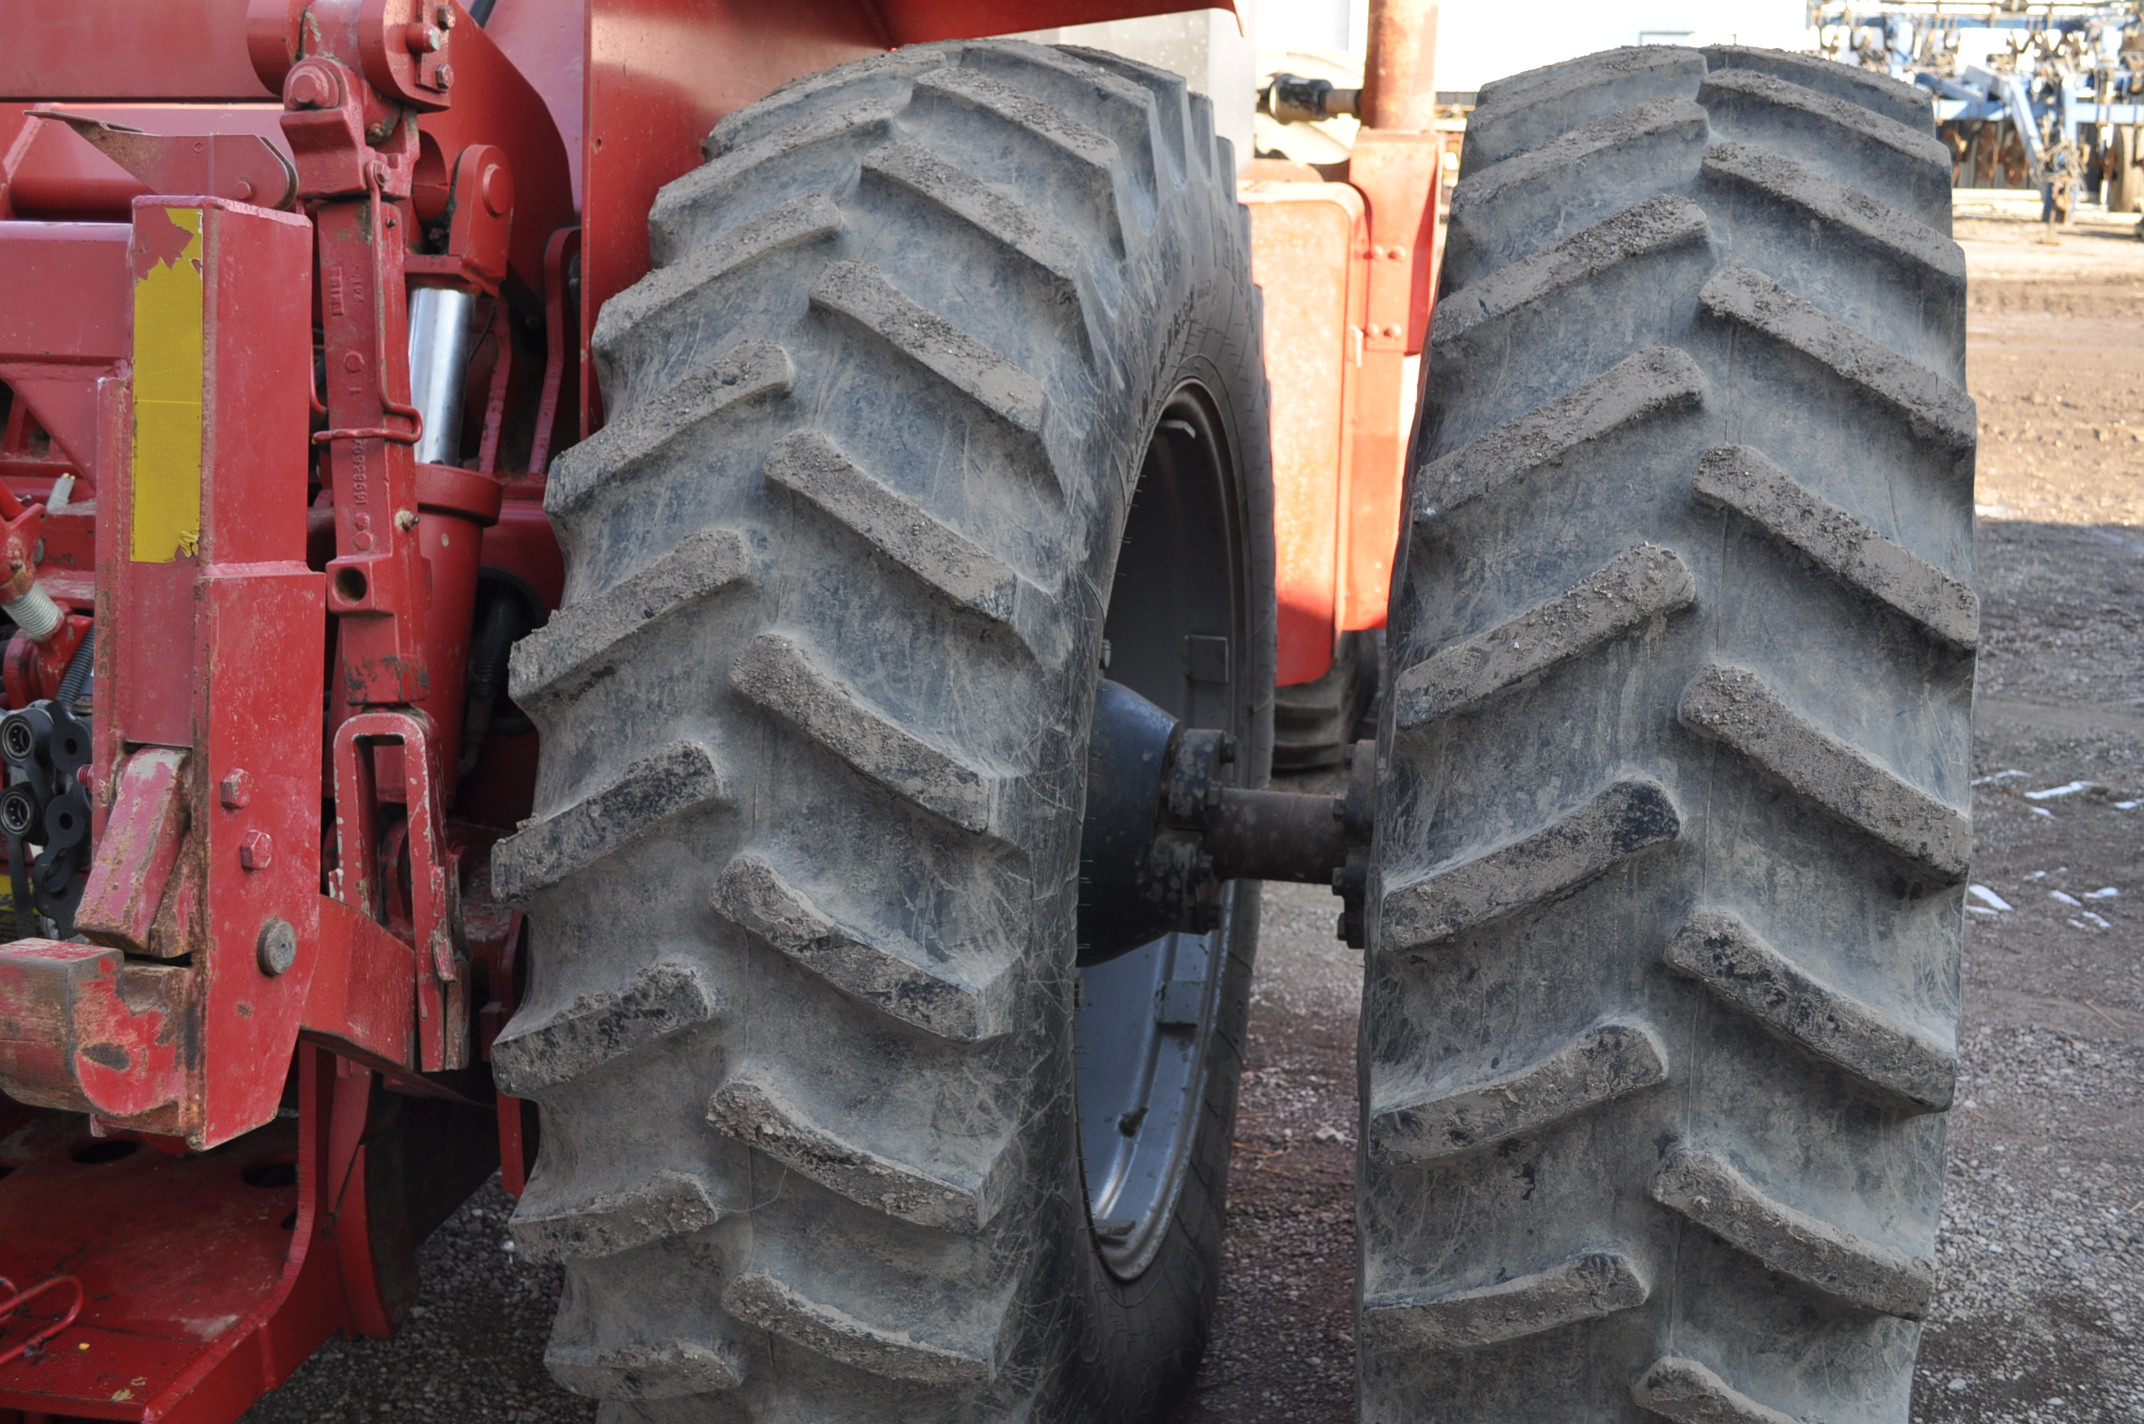 Case IH 9230 4WD tractor, 18.4-38 duals, power shift, skip shift, 4 hyd remotes, 3pt, quick hitch, - Image 7 of 23